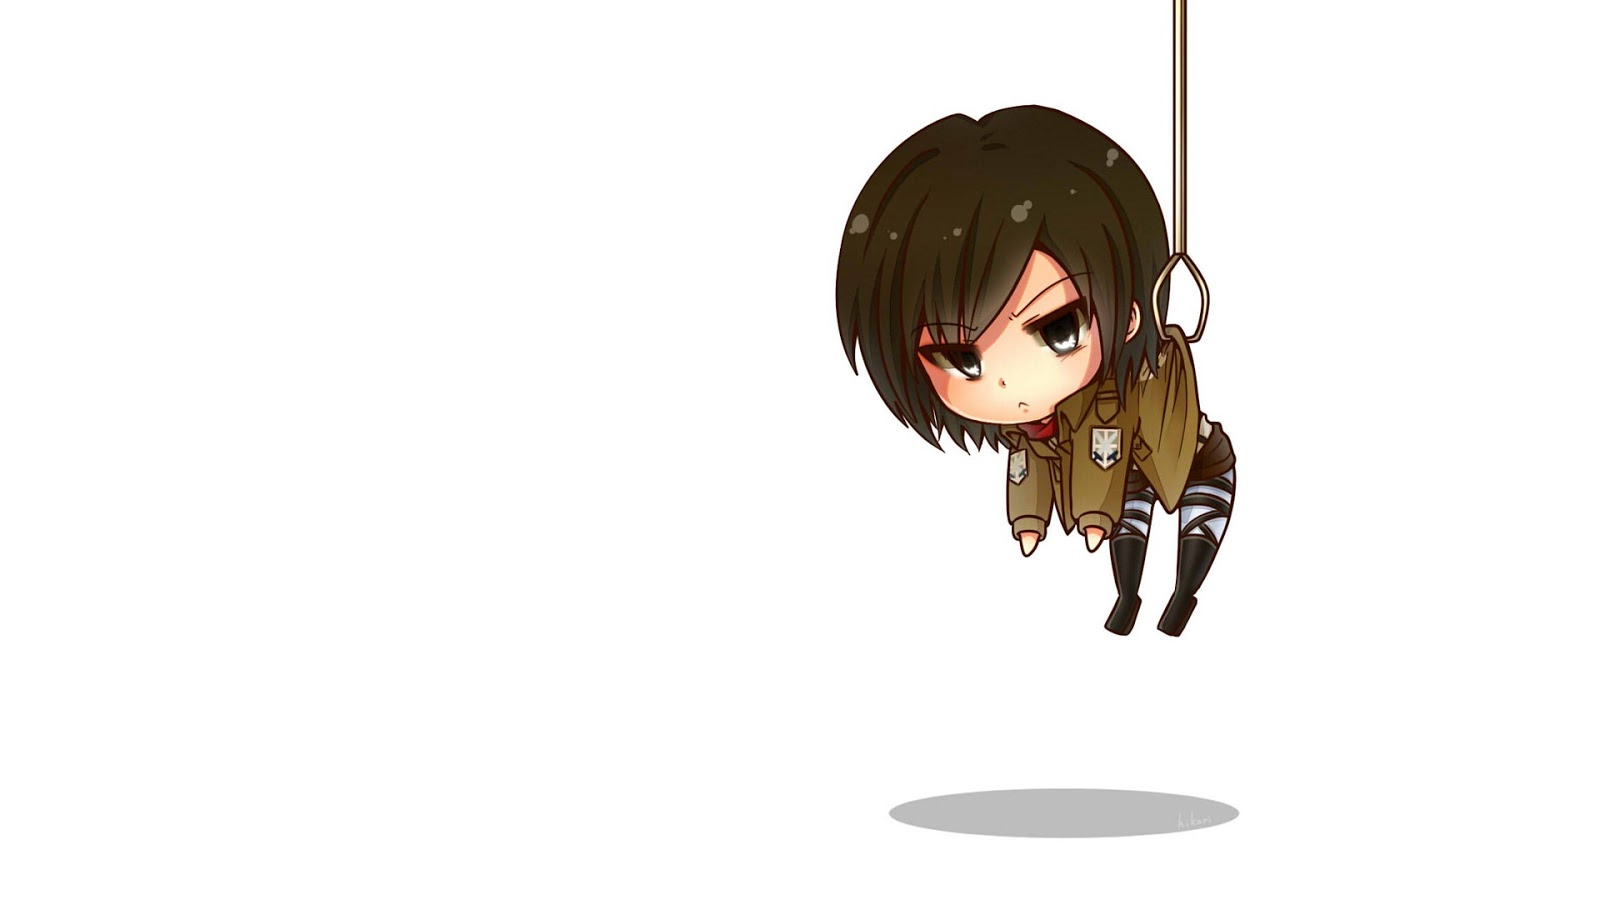 49 Attack On Titan Chibi Wallpapers Hd On Wallpapersafari